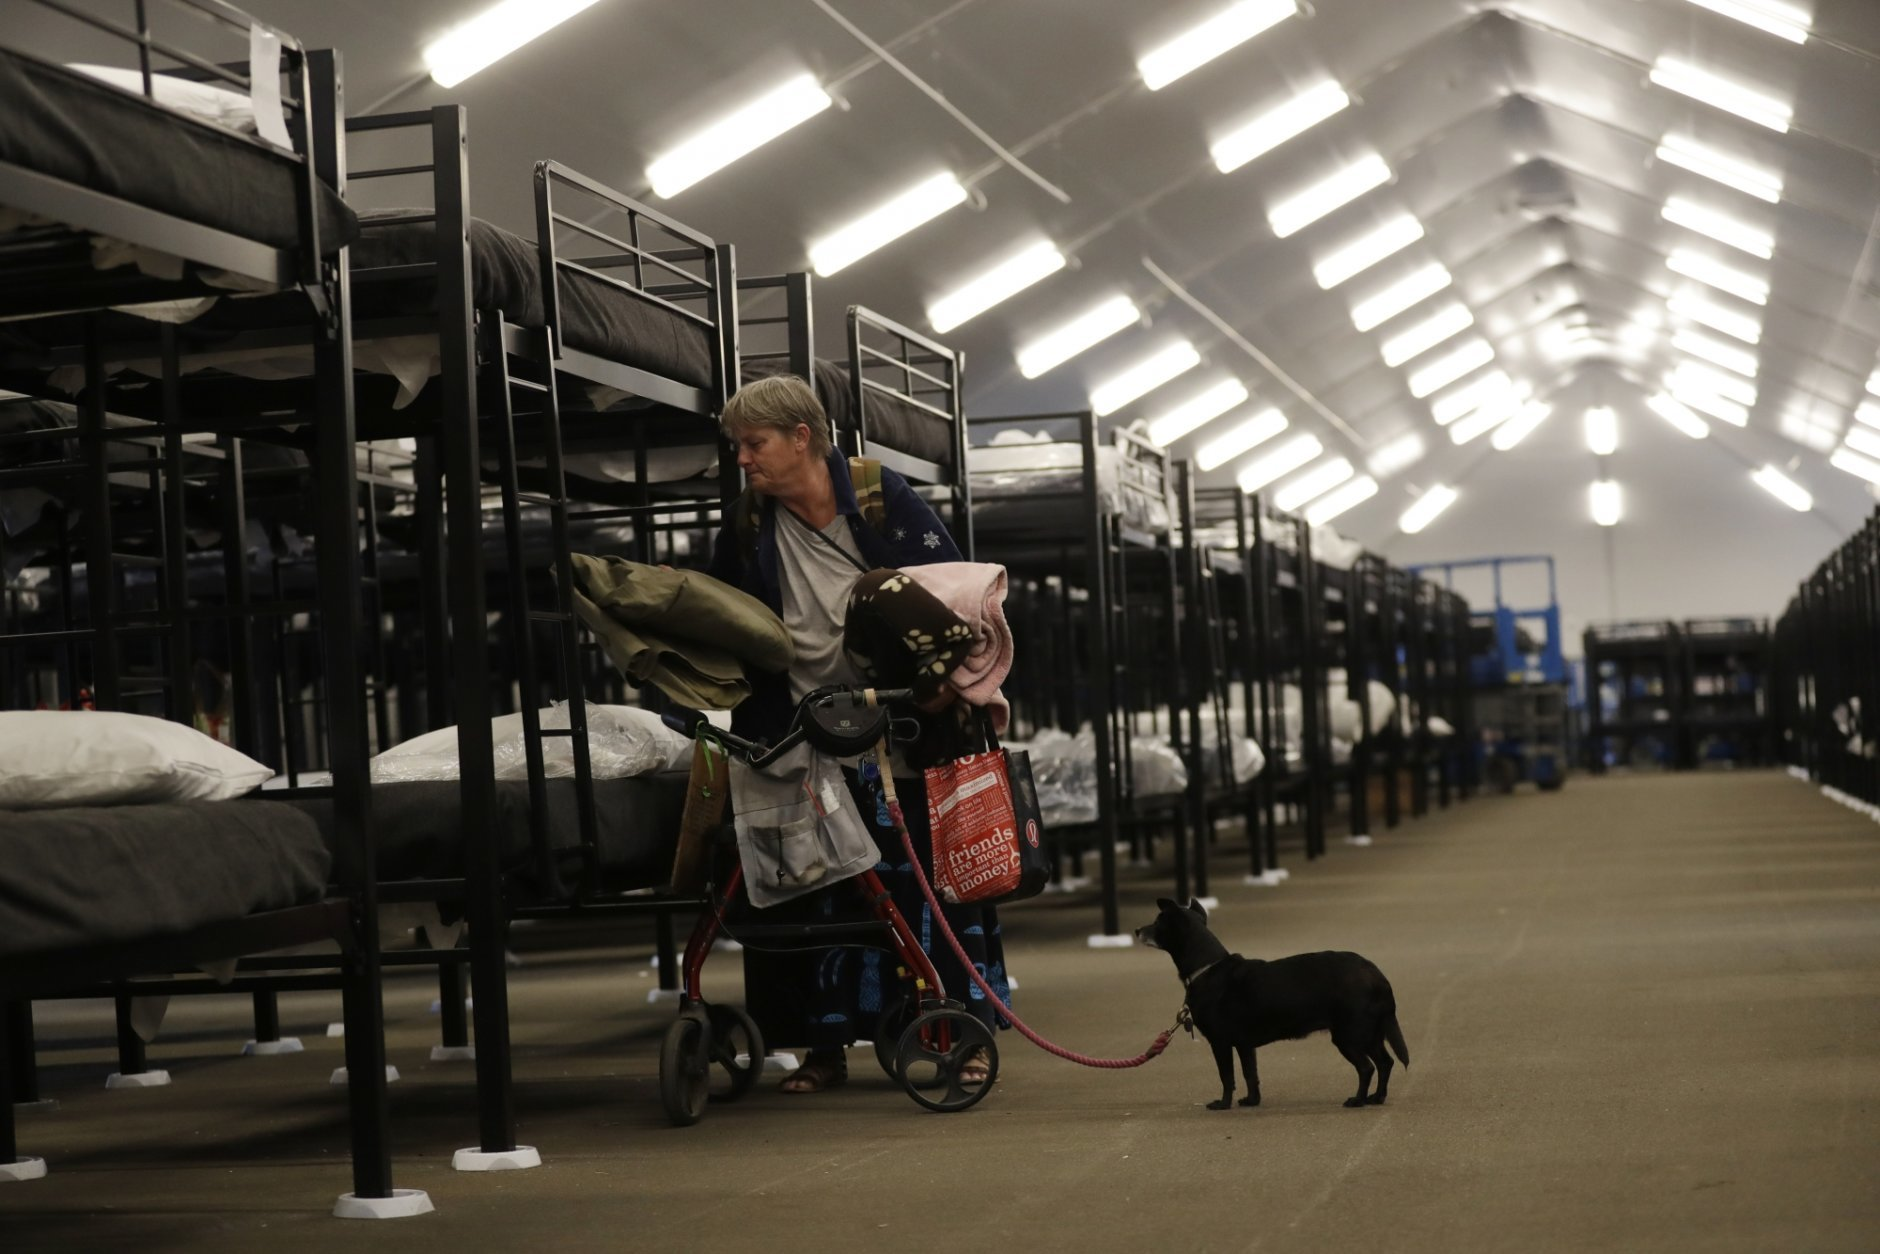 File - In this Dec. 1, 2017, file photo, Verna Vasbinder prepares her new bunk in the city's new Temporary Bridge Shelter for the homeless as her dog, Lucy Lui, looks on in San Diego. A new federal report says the number of people living on the streets in Los Angeles and San Diego, two epicenters of a West Coast homelessness crisis, fell this year, suggesting possible success in those cities' efforts to combat the problem. Homelessness overall was up slightly across the country, although the report did not provide a complete picture of the problem. (AP Photo/Gregory Bull, File)